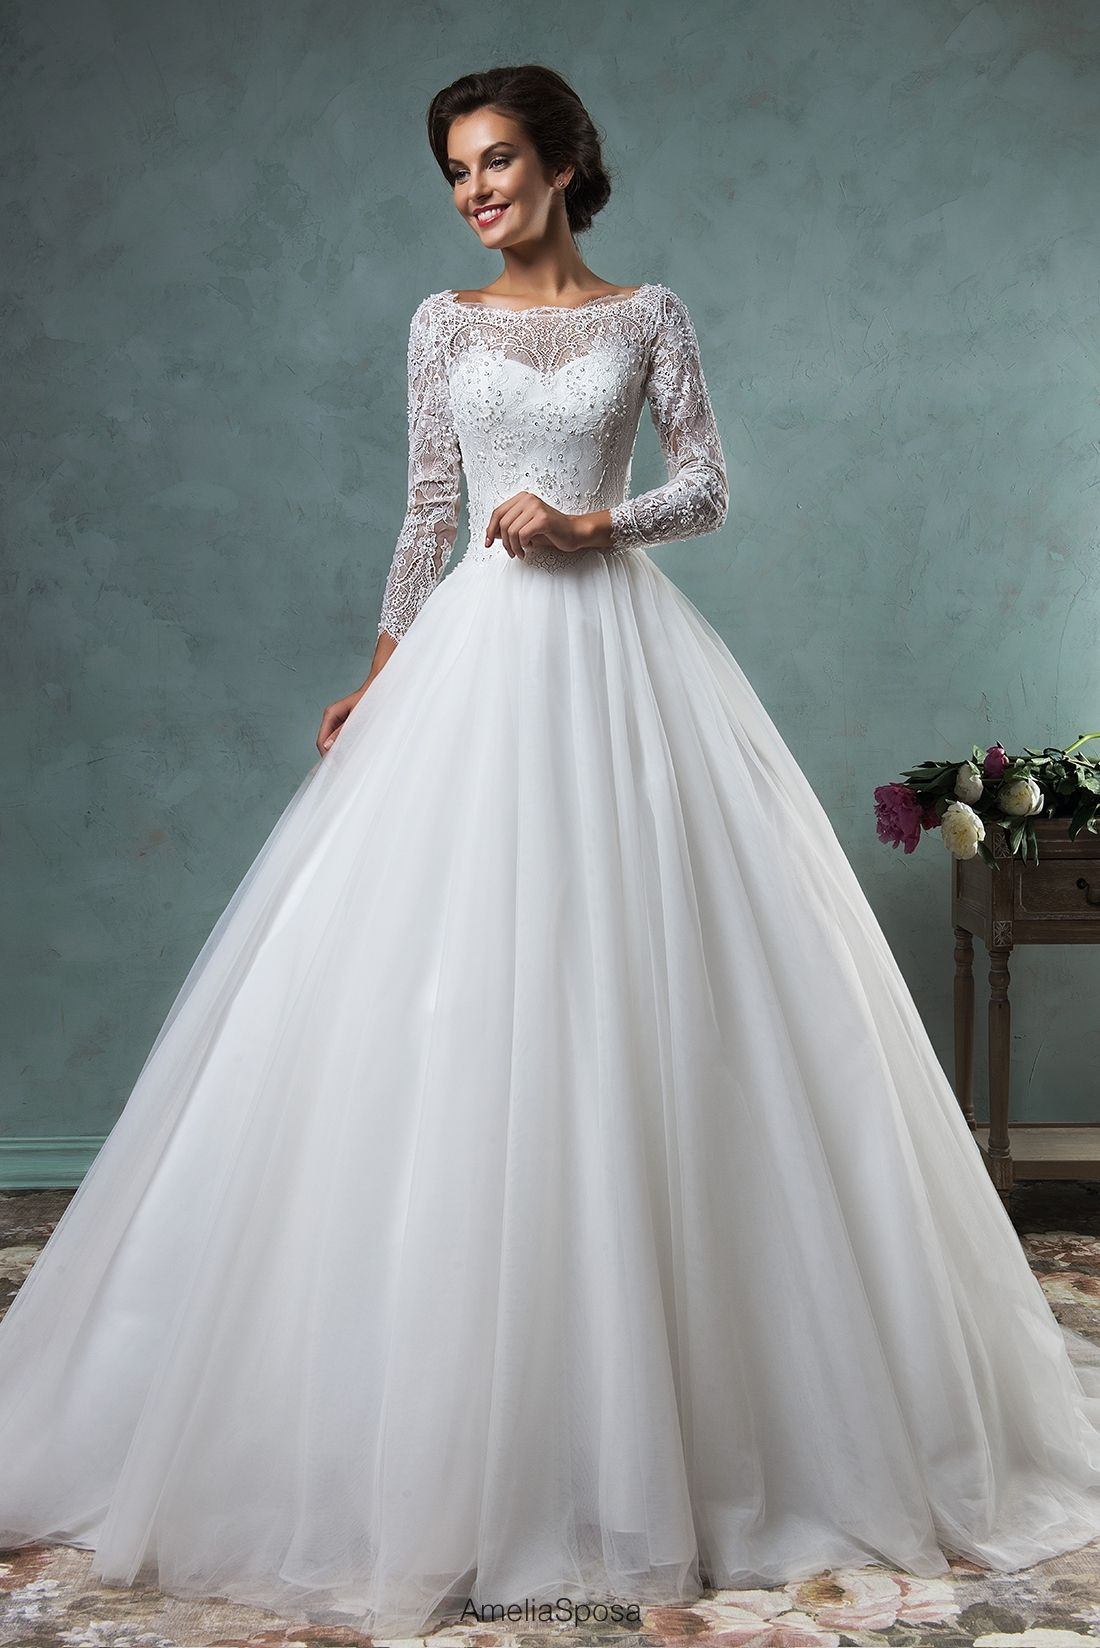 This special elegant wedding dress made of lace and tulle, it